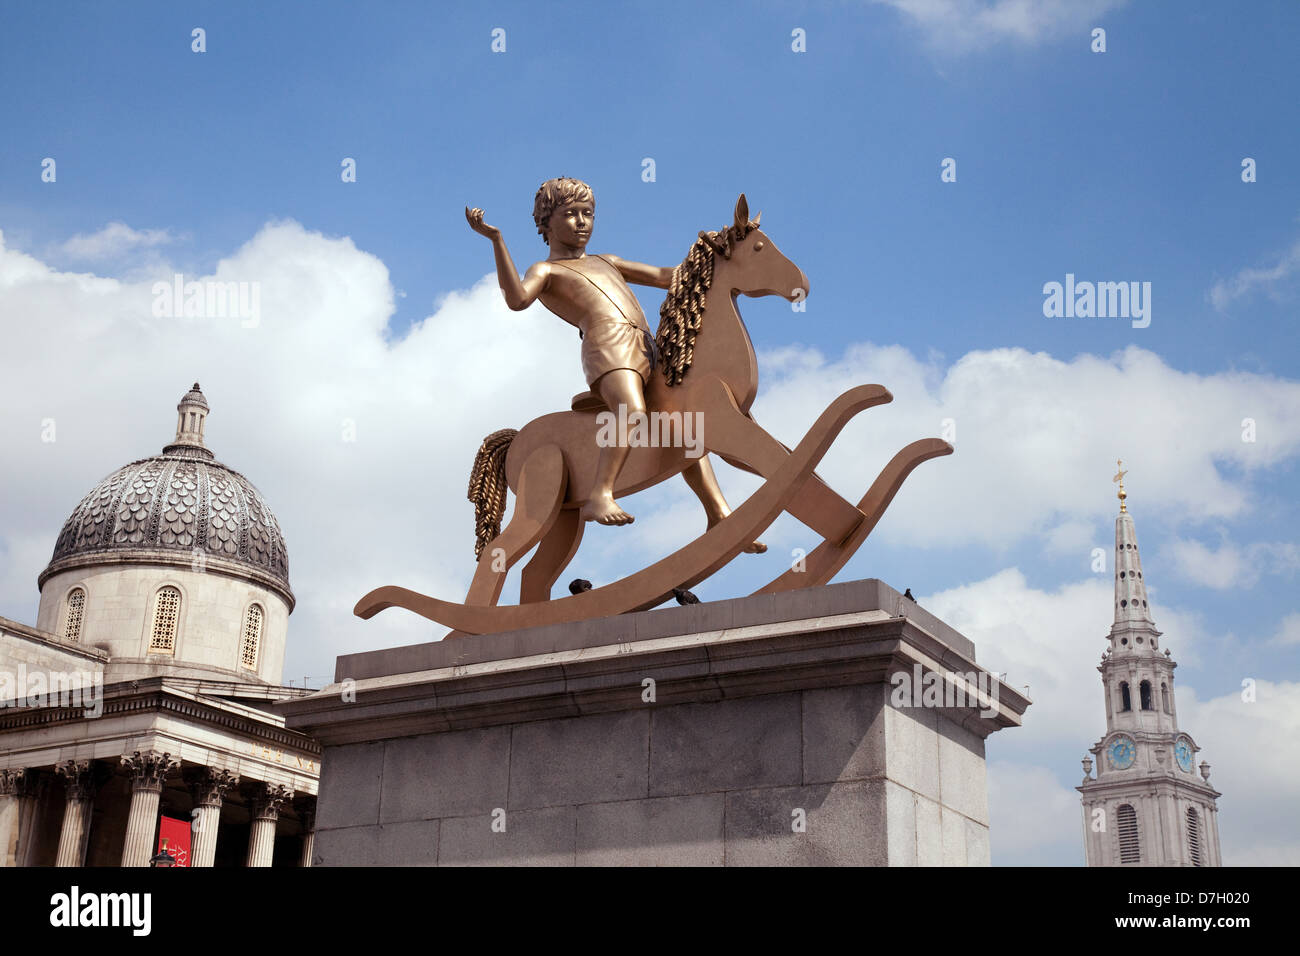 Powerless Structures - a bronze statue of a boy on a rocking horse, on the Fourth Plinth, Trafalgar Square London - Stock Image